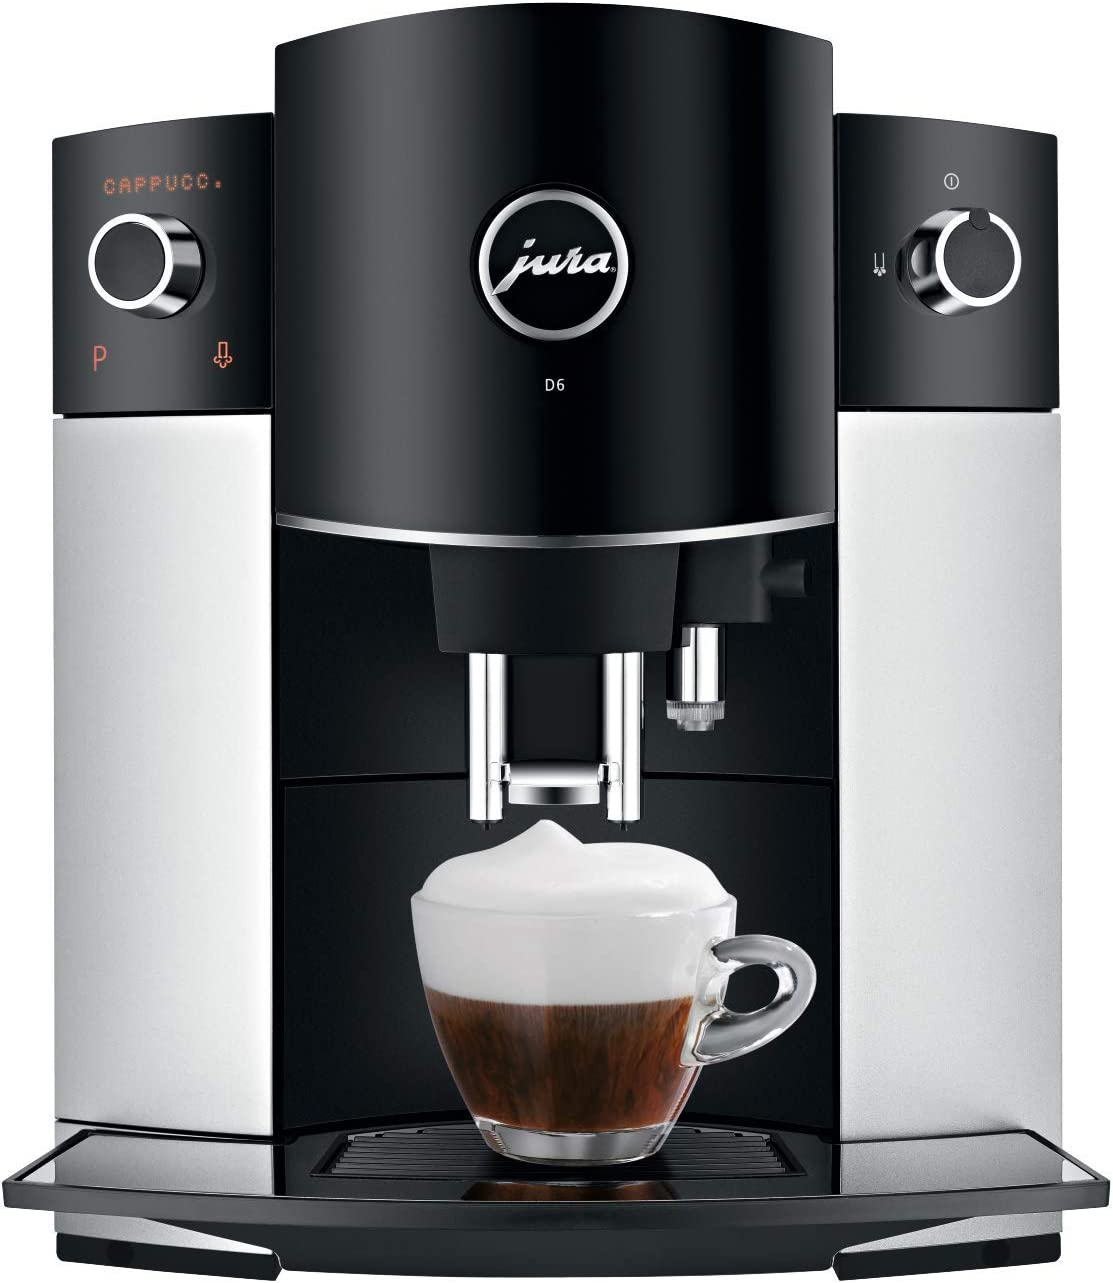 Jura 15216 D6 Automatic Coffee Machine, 1, Platinum